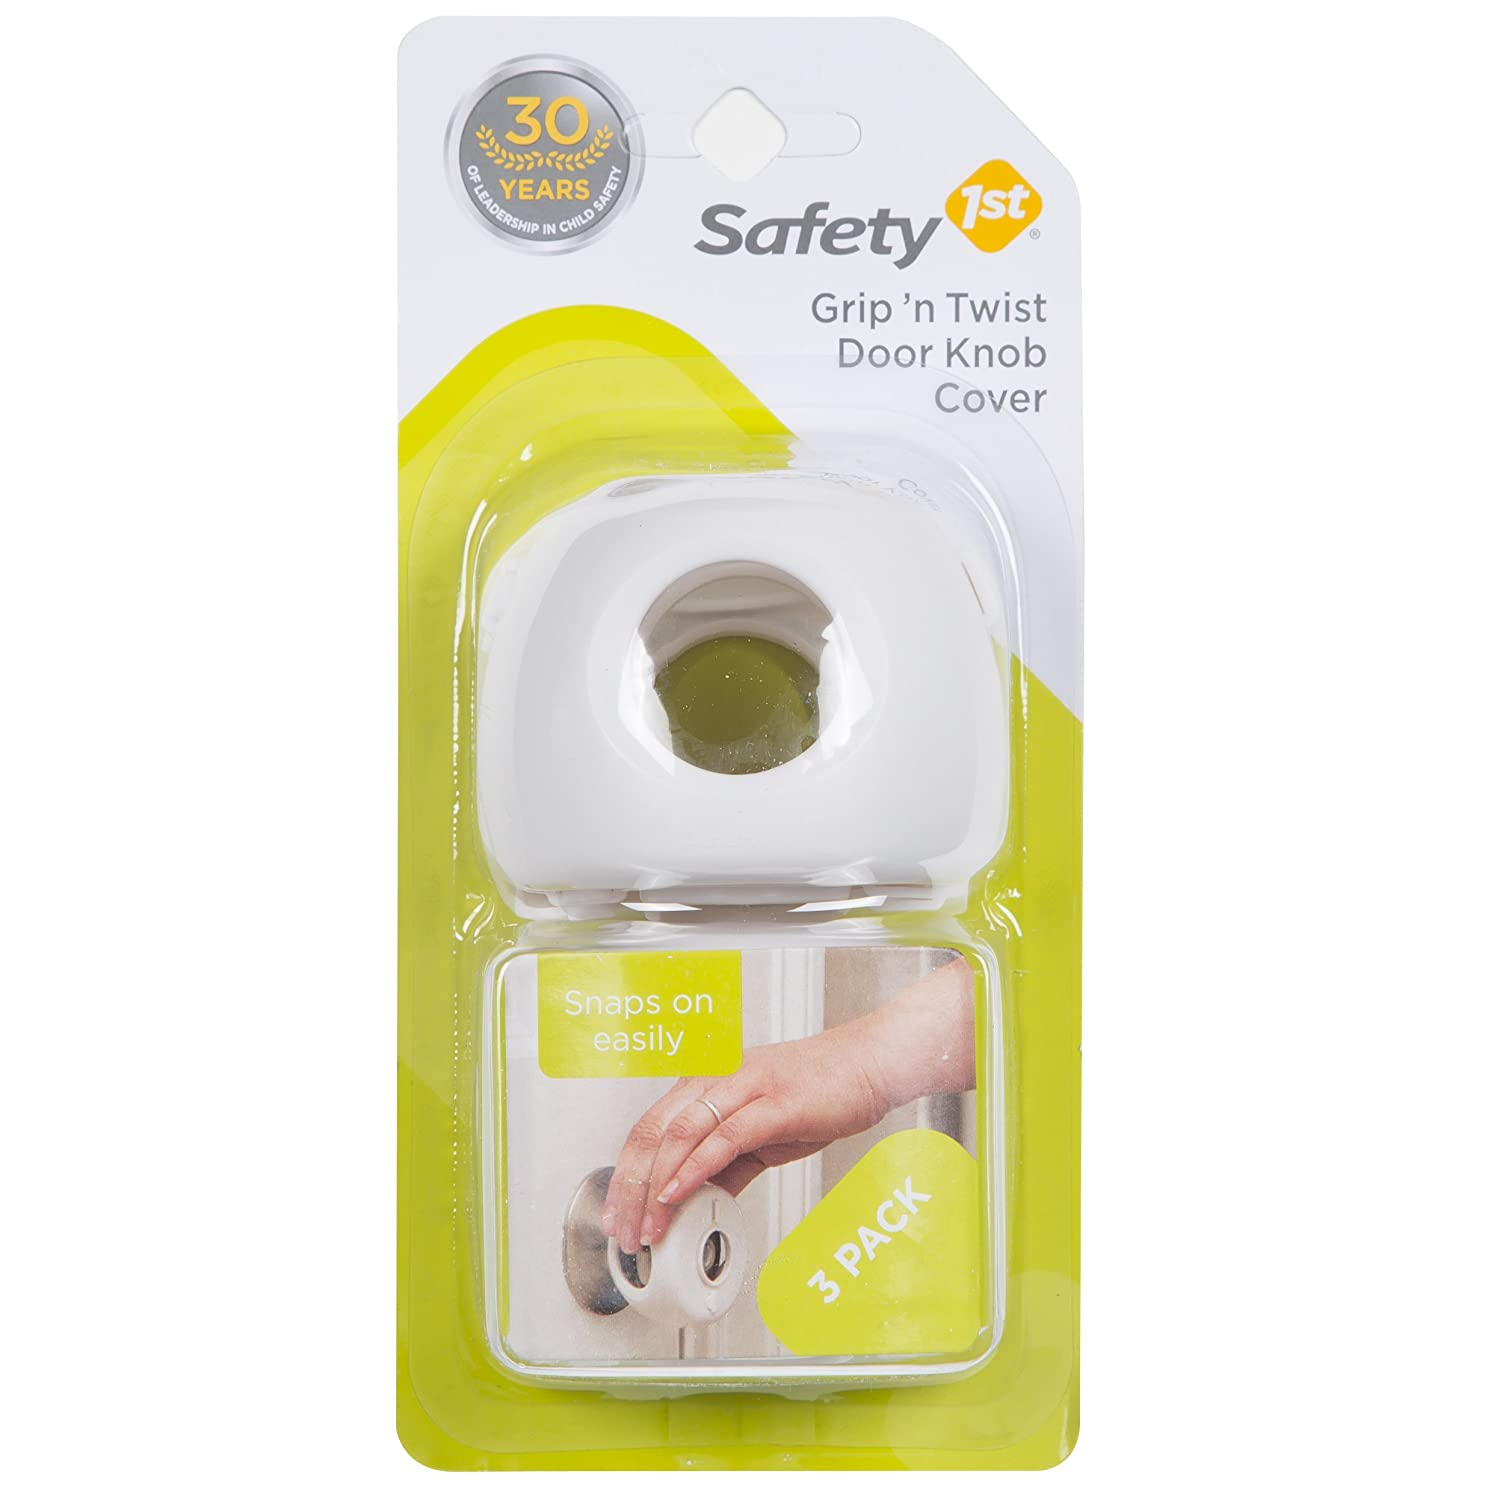 Safety 1st 4-Pack Grip N Twist Round Door Knob Covers Keeps Kids Out Baby Proof